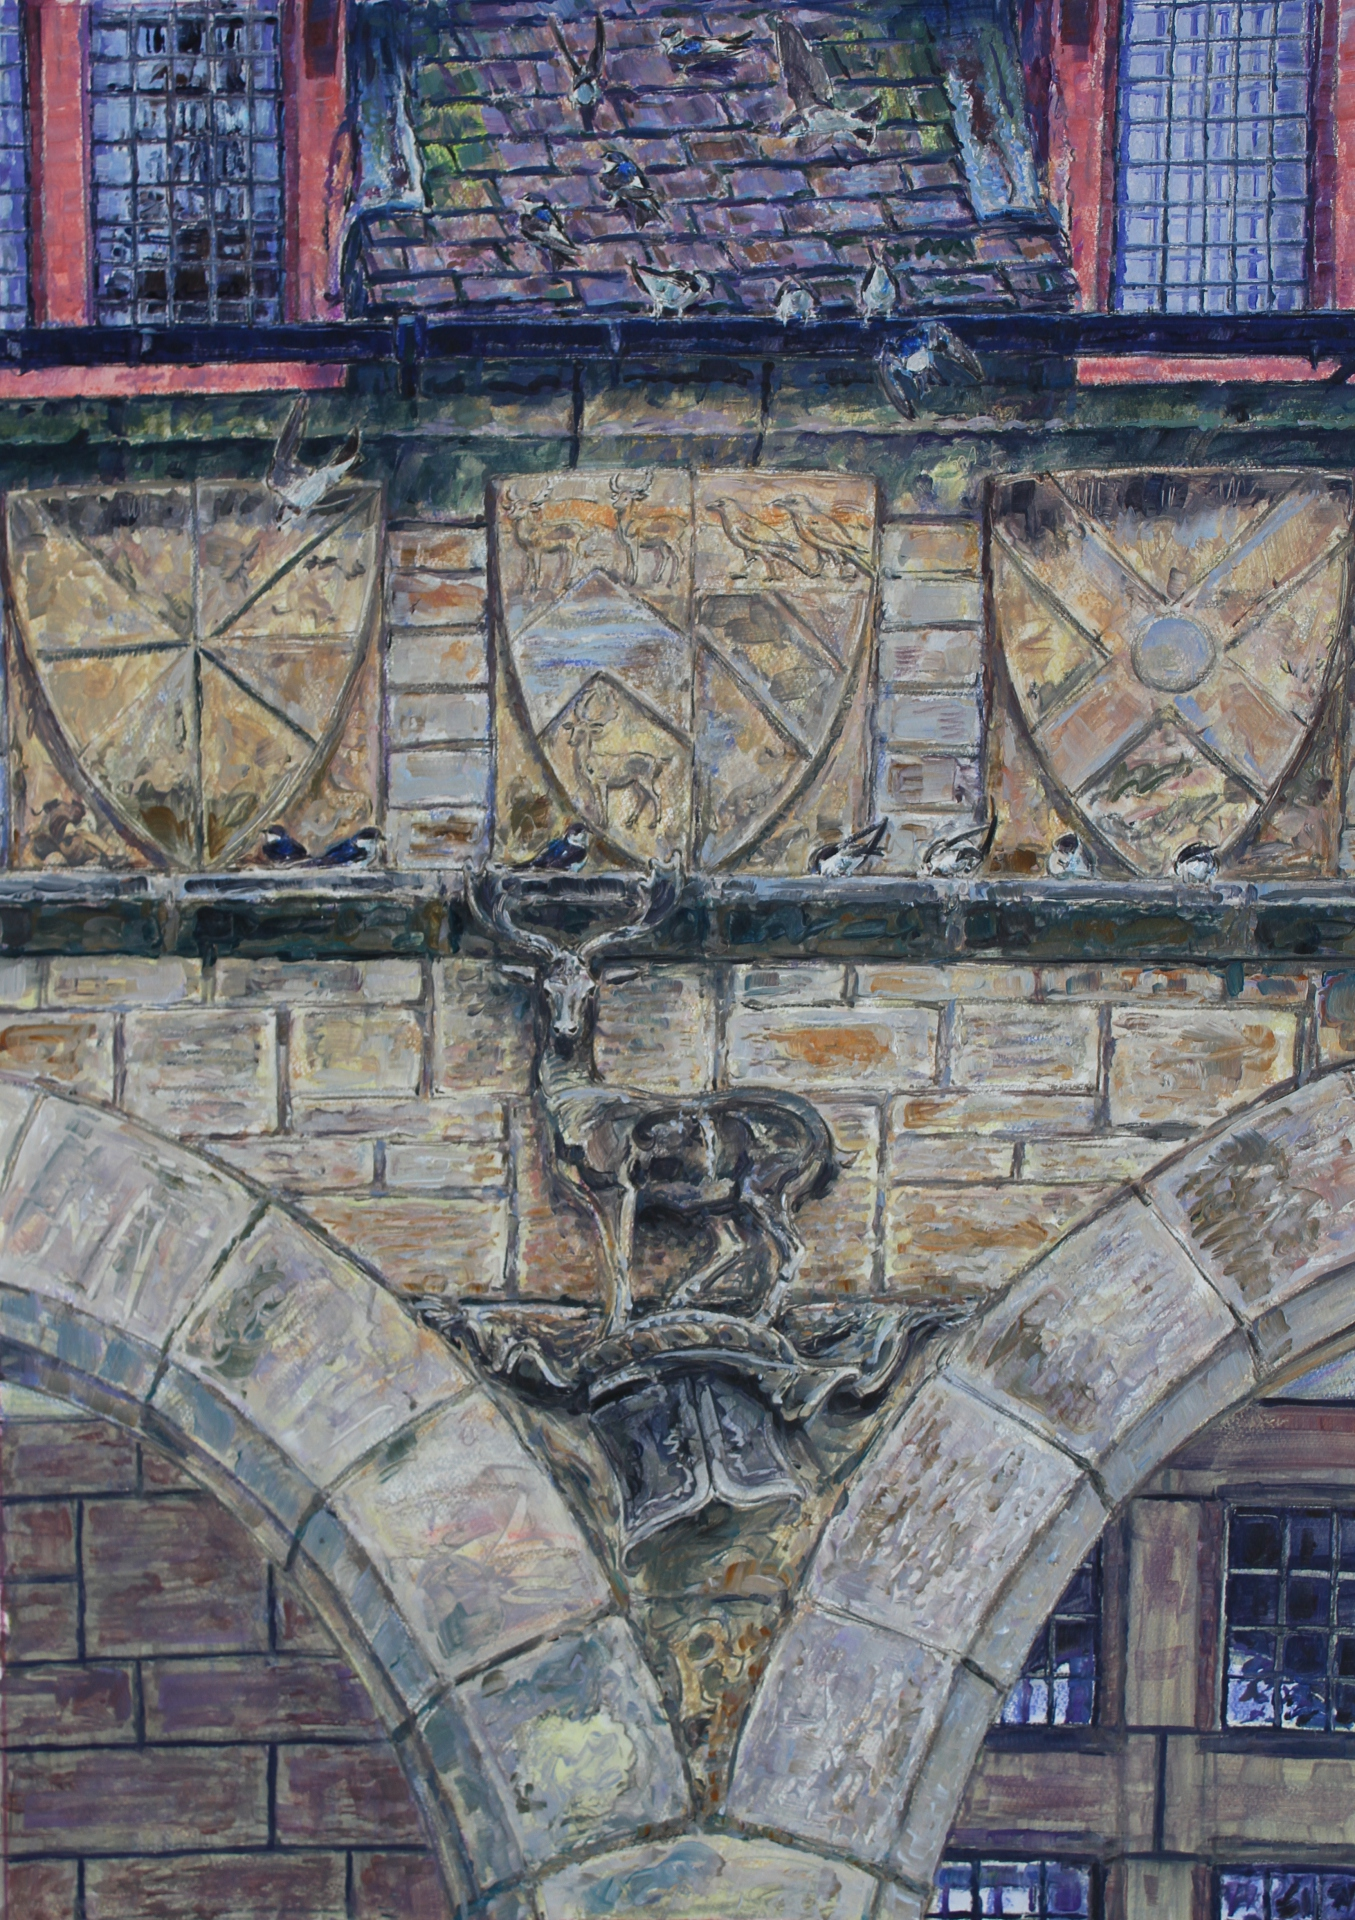 Architectural Deer Motif, Studley Deer Park, North Yorkshire